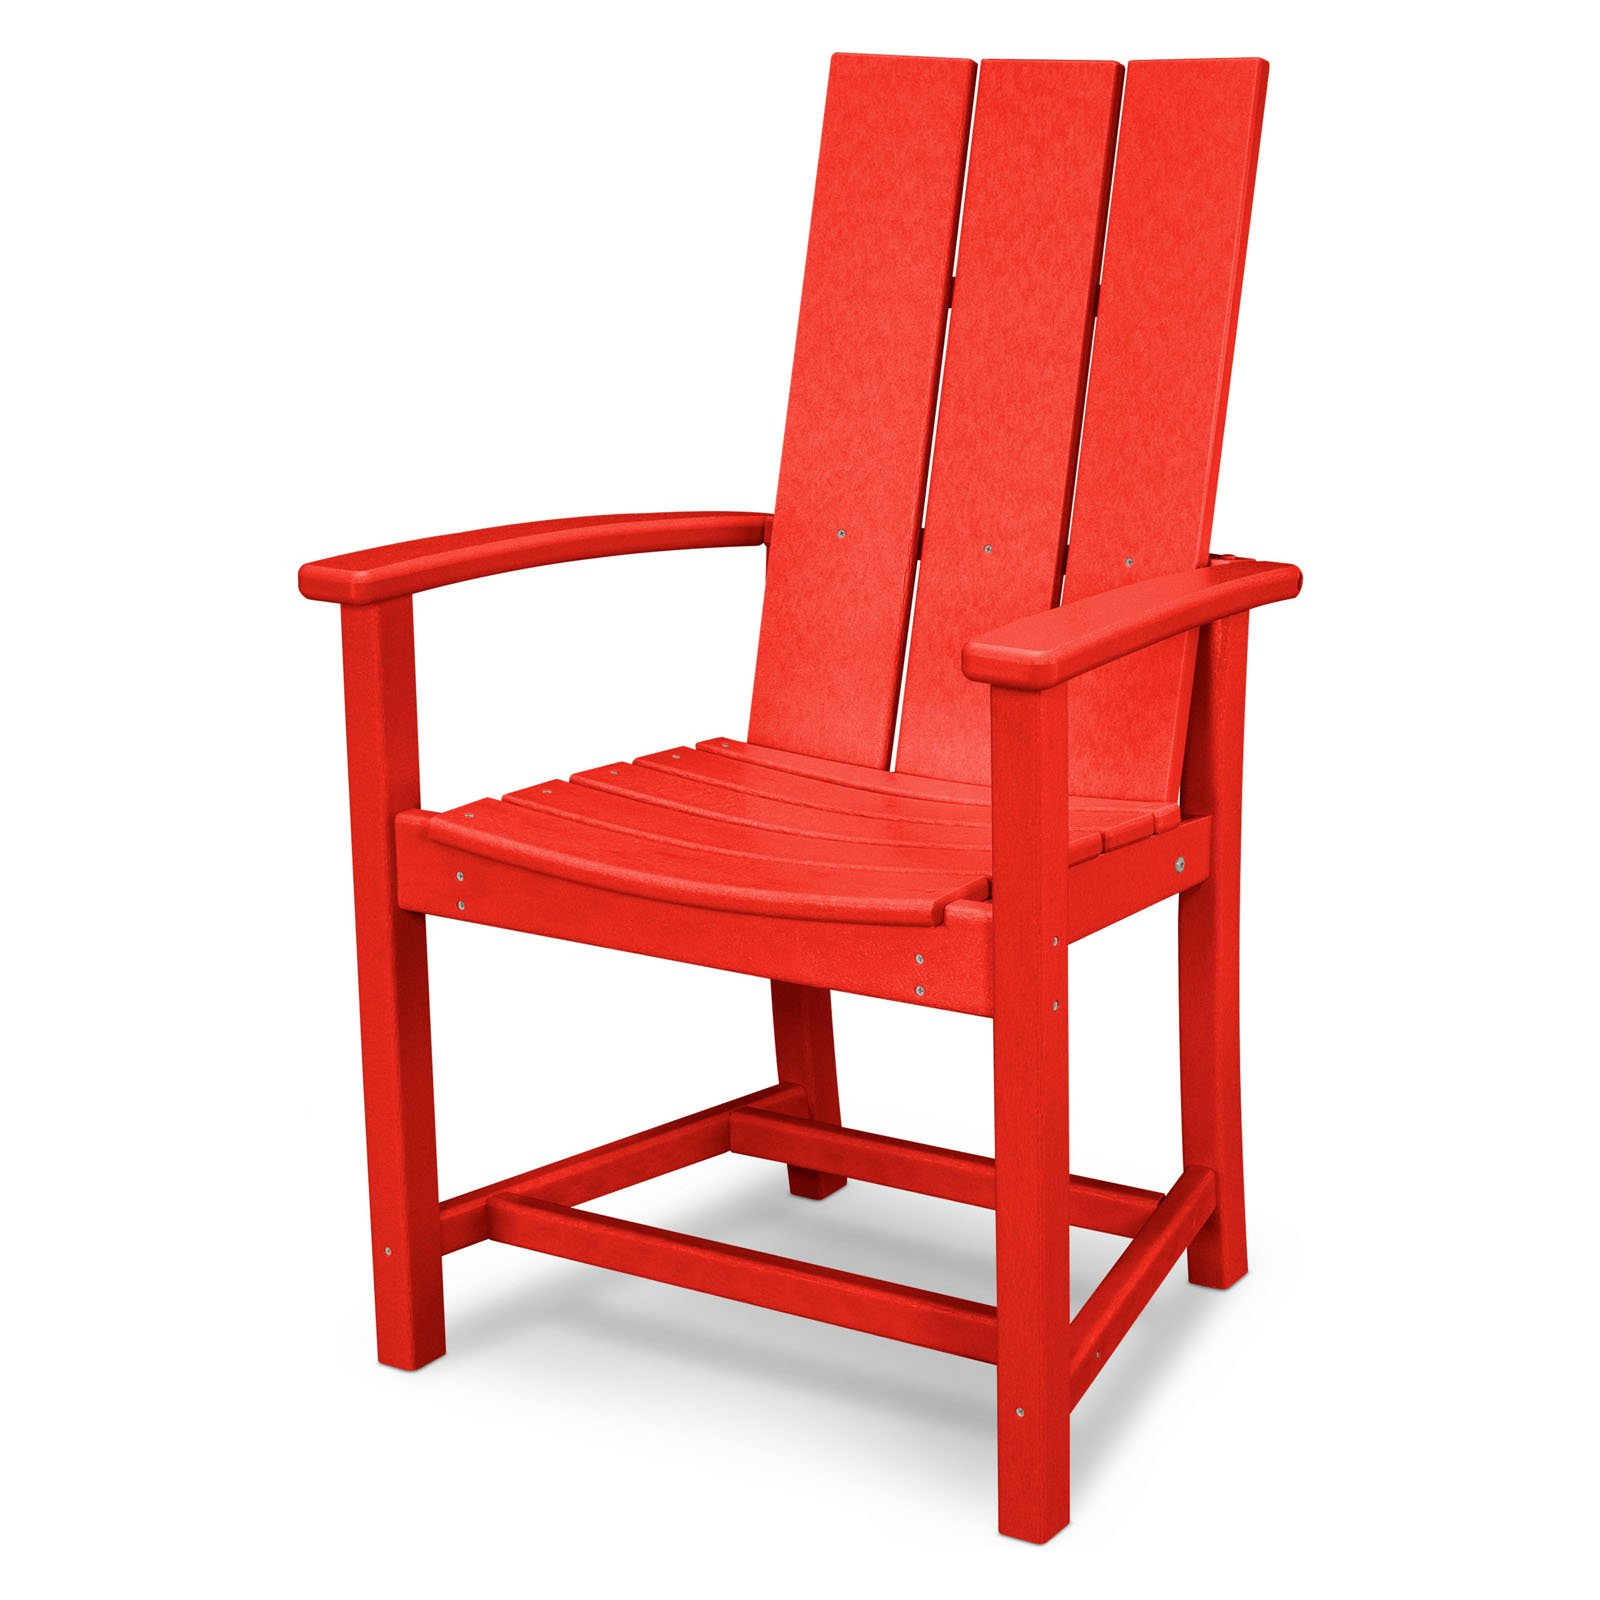 Outdoor Polywoodâ® Modern Trio Adirondack Dining Chair Sunset Red For Most Recently Released Saintcroix 3 Piece Dining Sets (View 20 of 20)